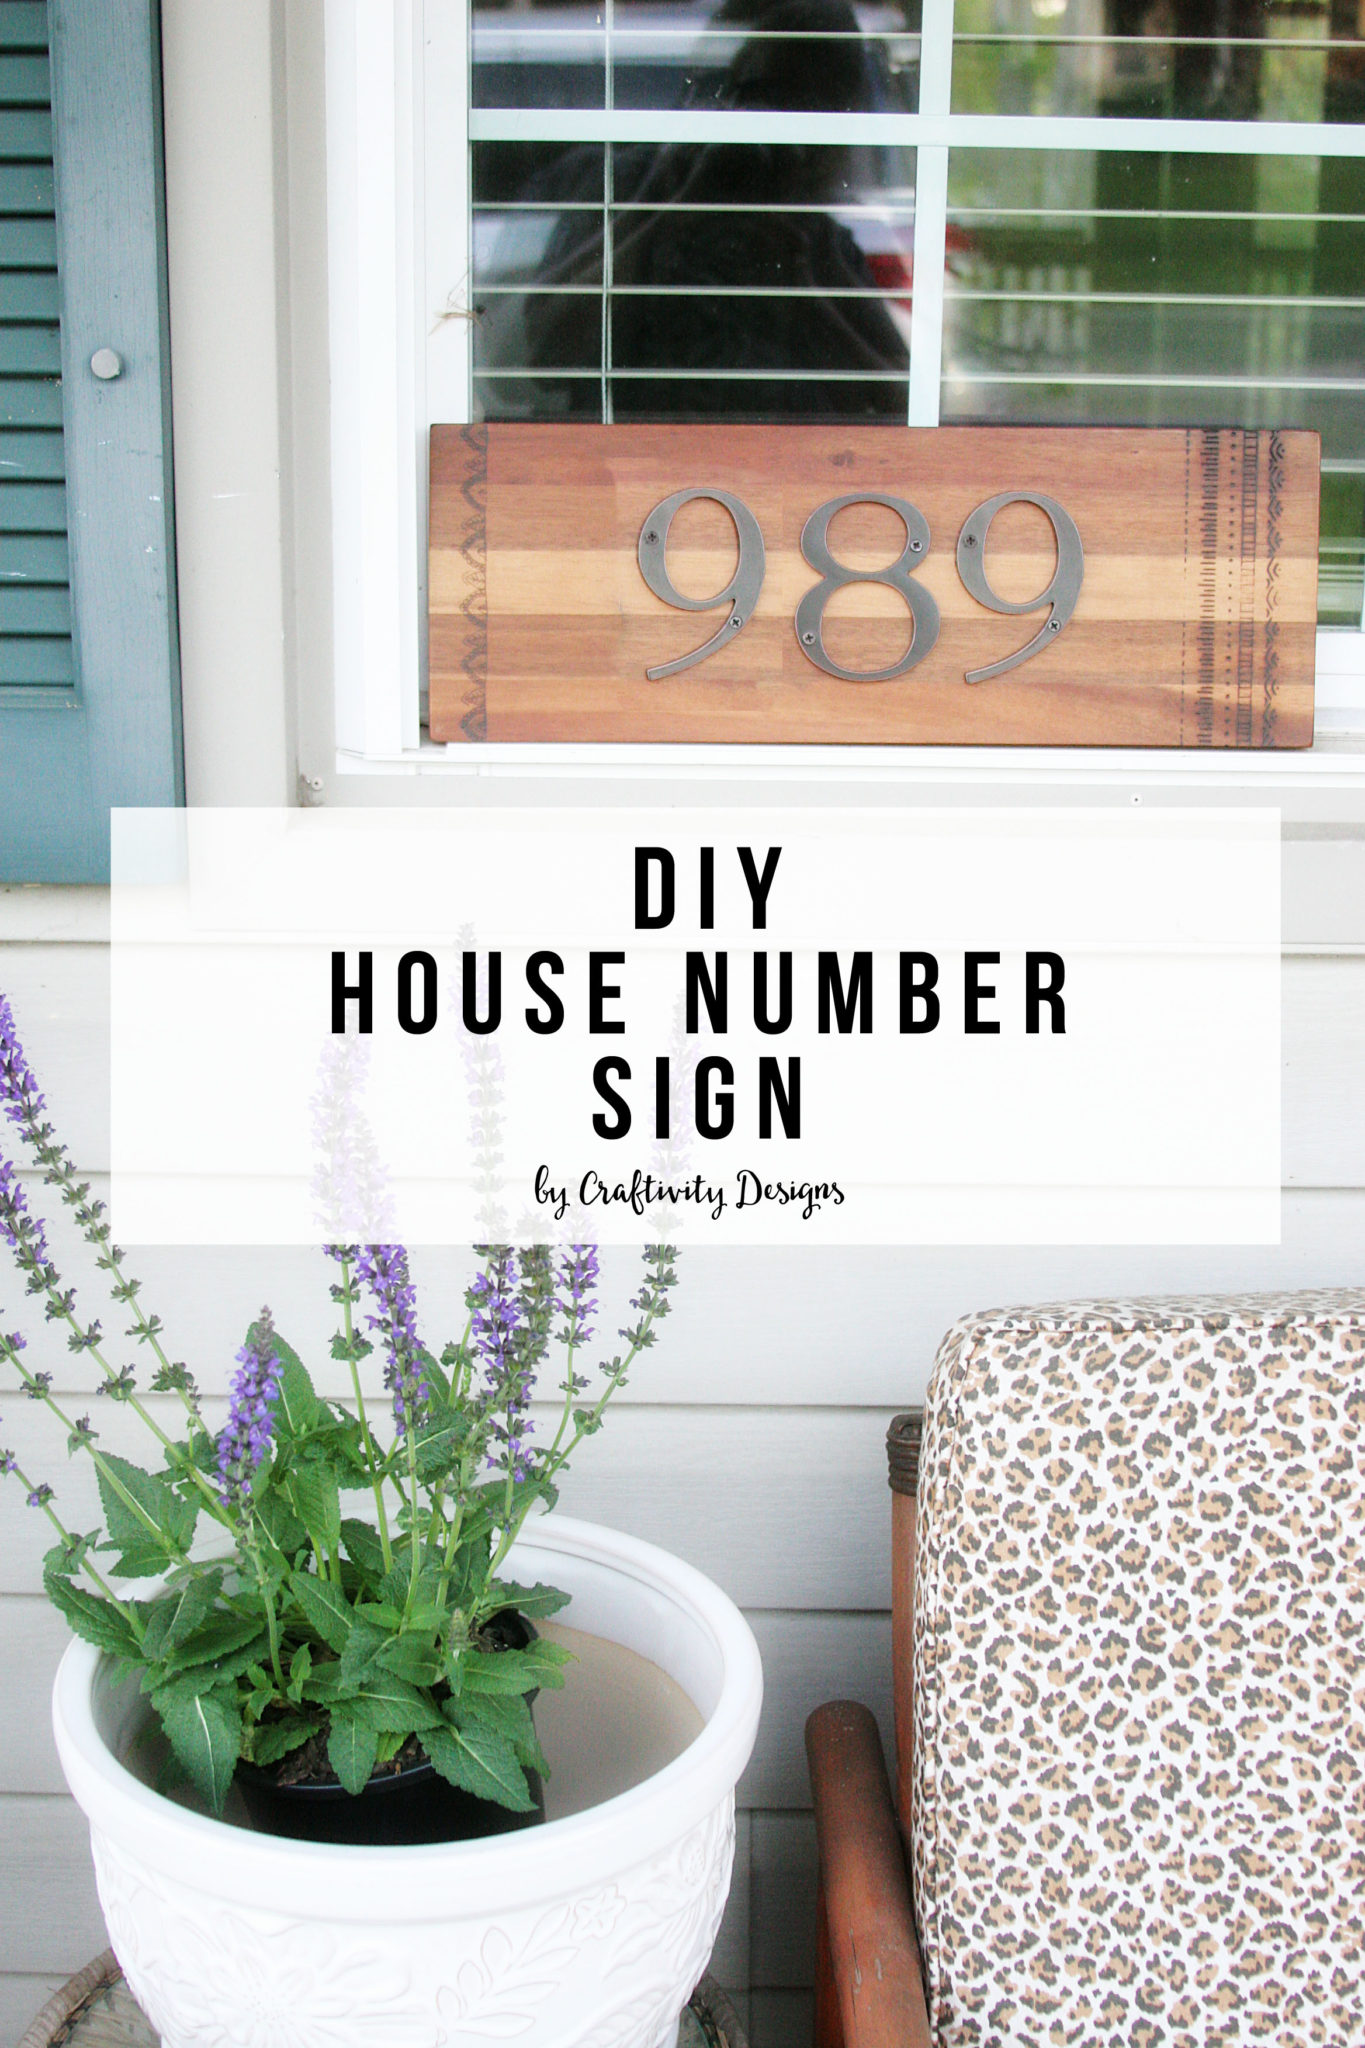 Diy house number sign craftivity designs for House sign designs